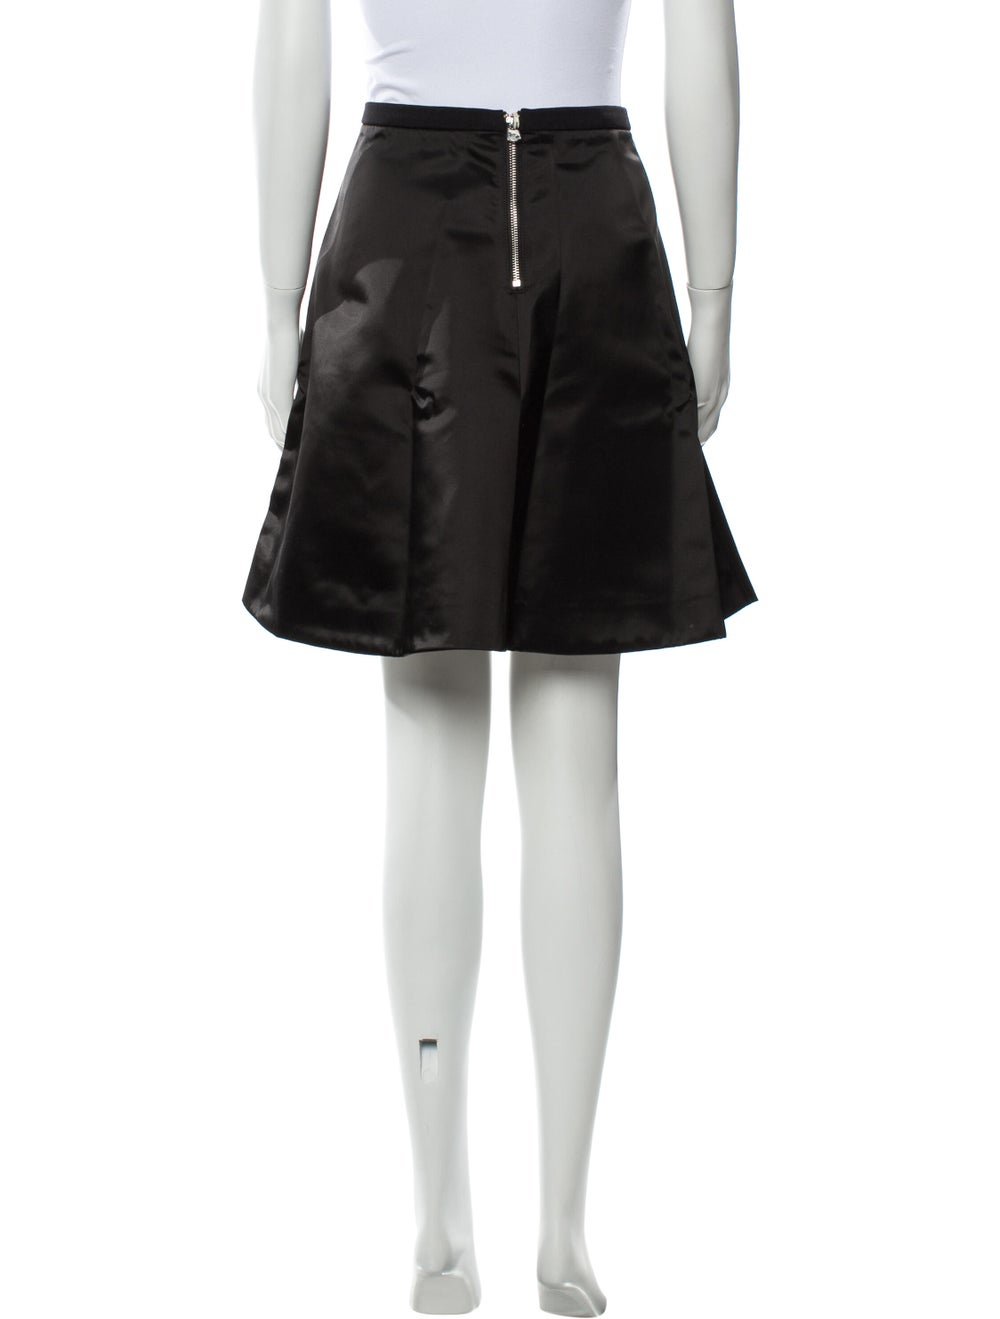 Acne Studios Knee-Length Skirt Black - image 3